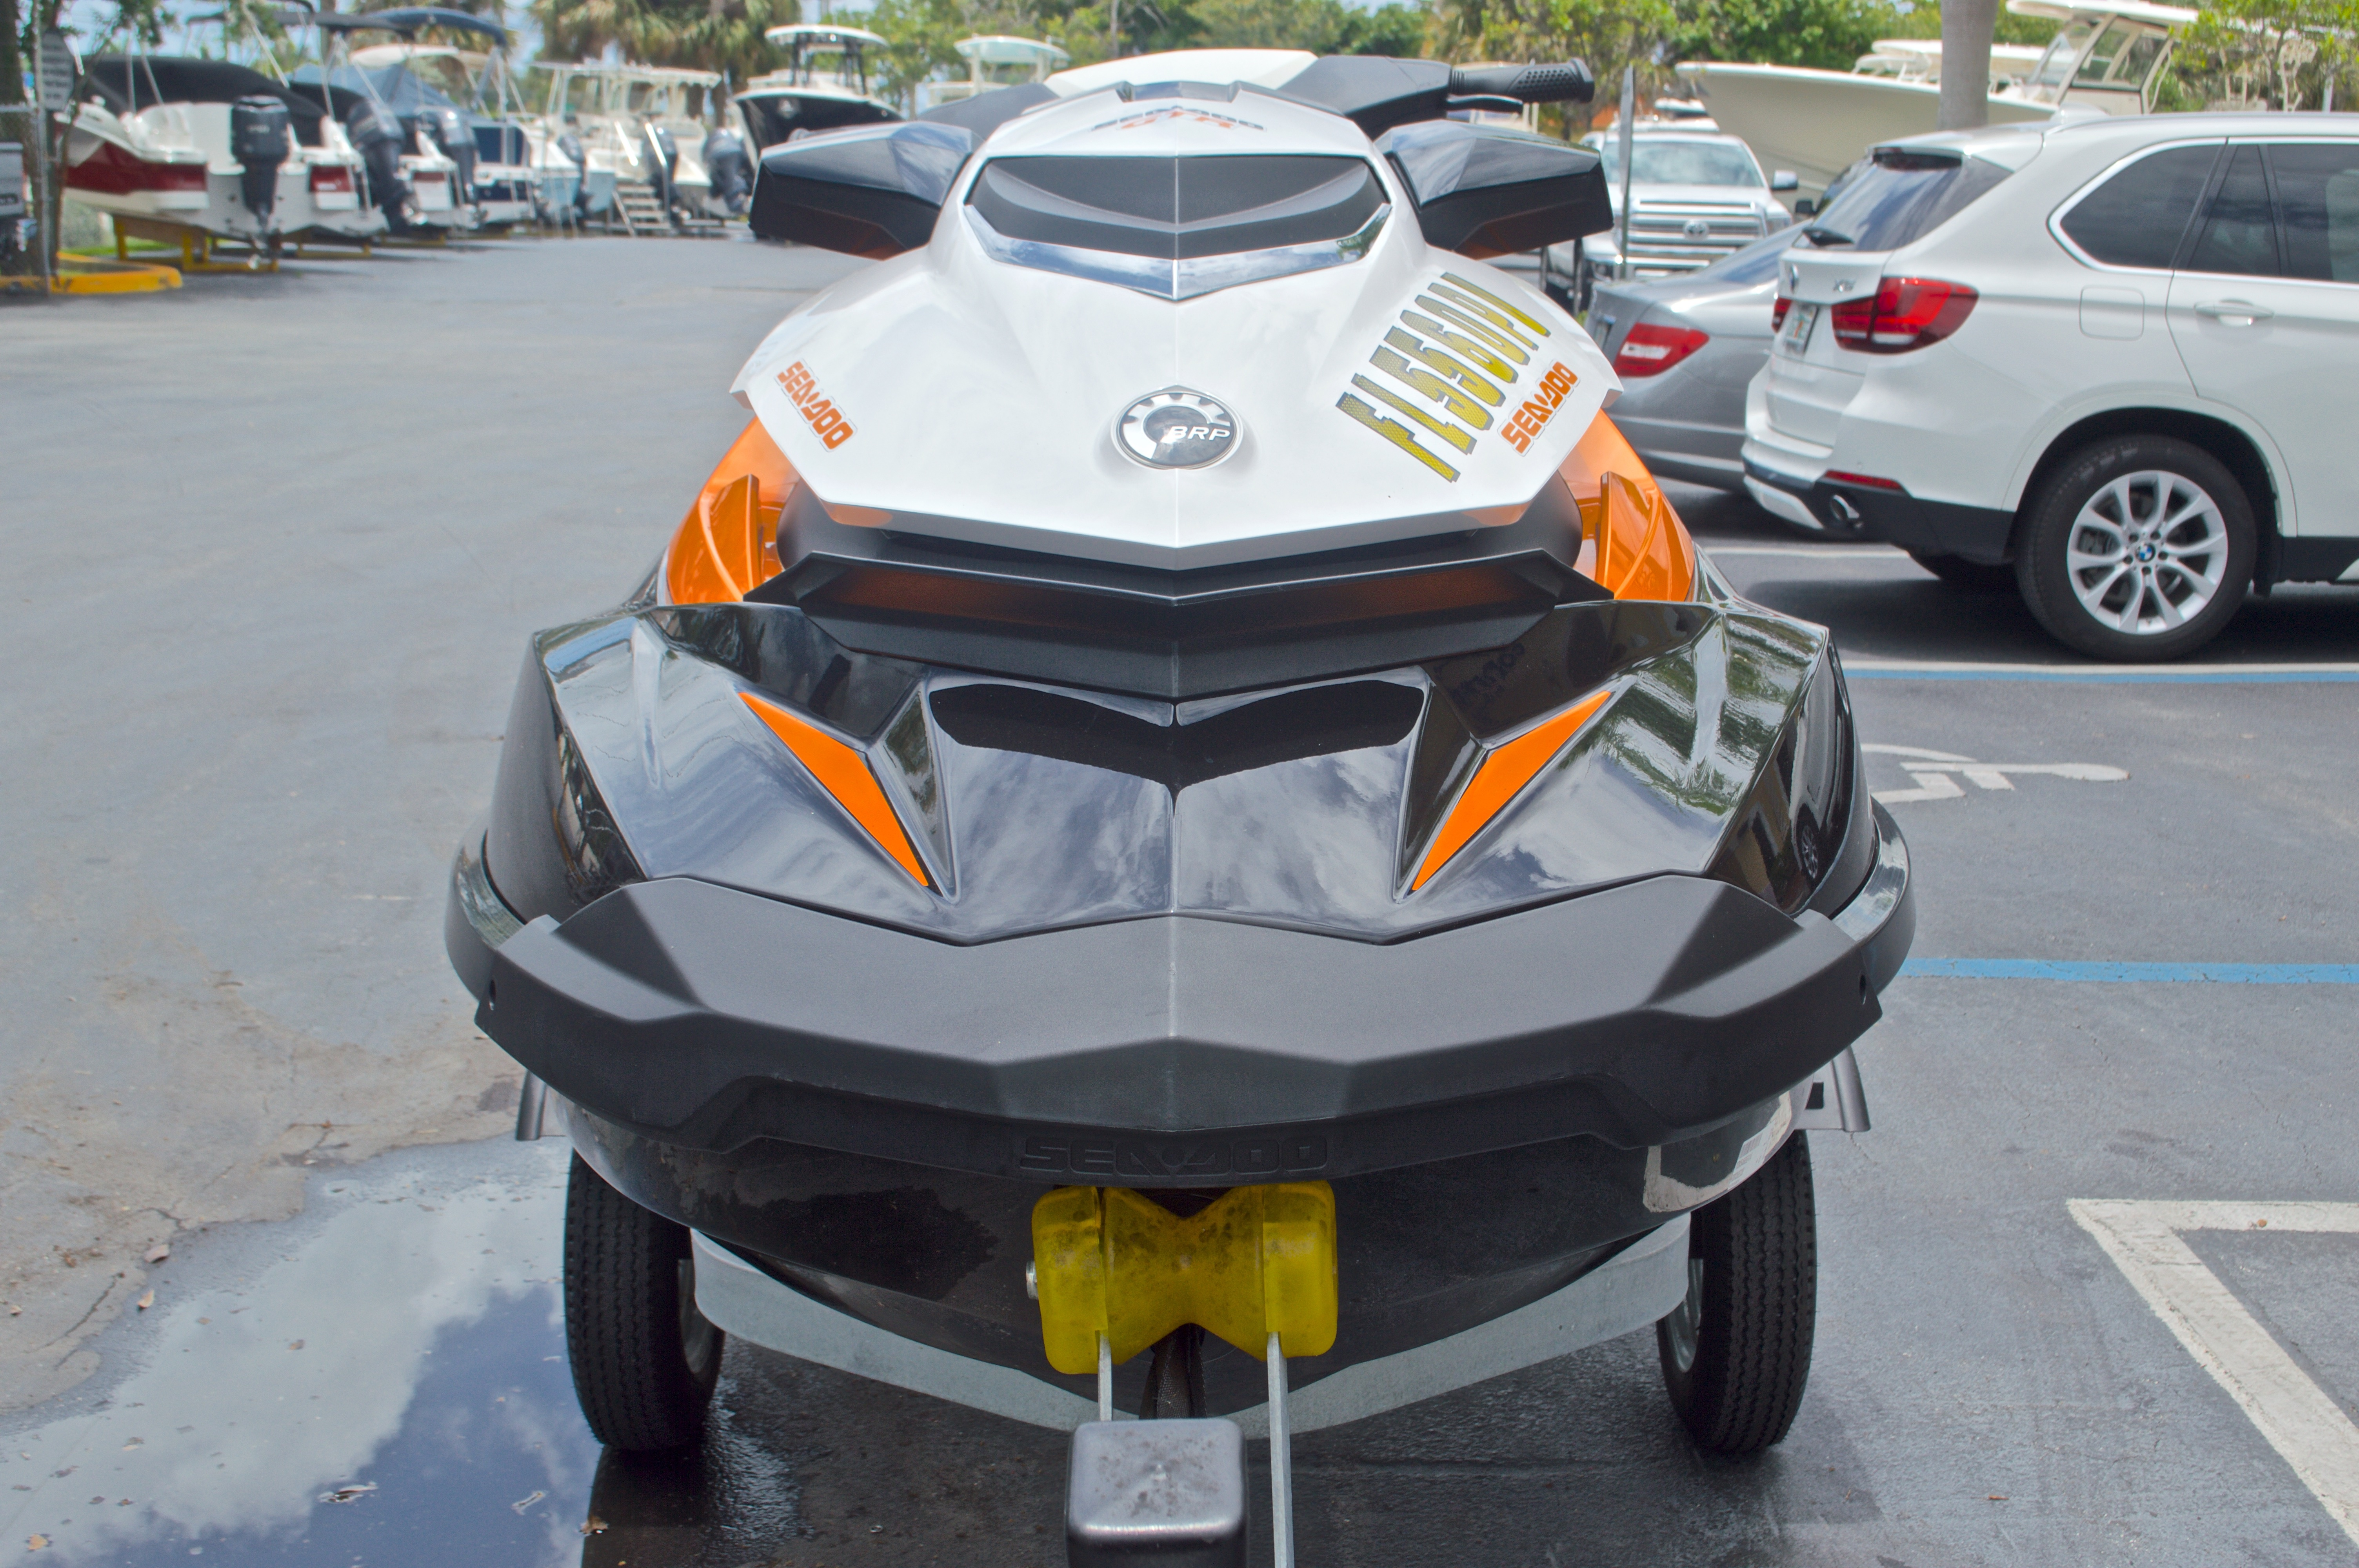 Thumbnail 2 for Used 2014 Sea-Doo GTR 215 boat for sale in West Palm Beach, FL